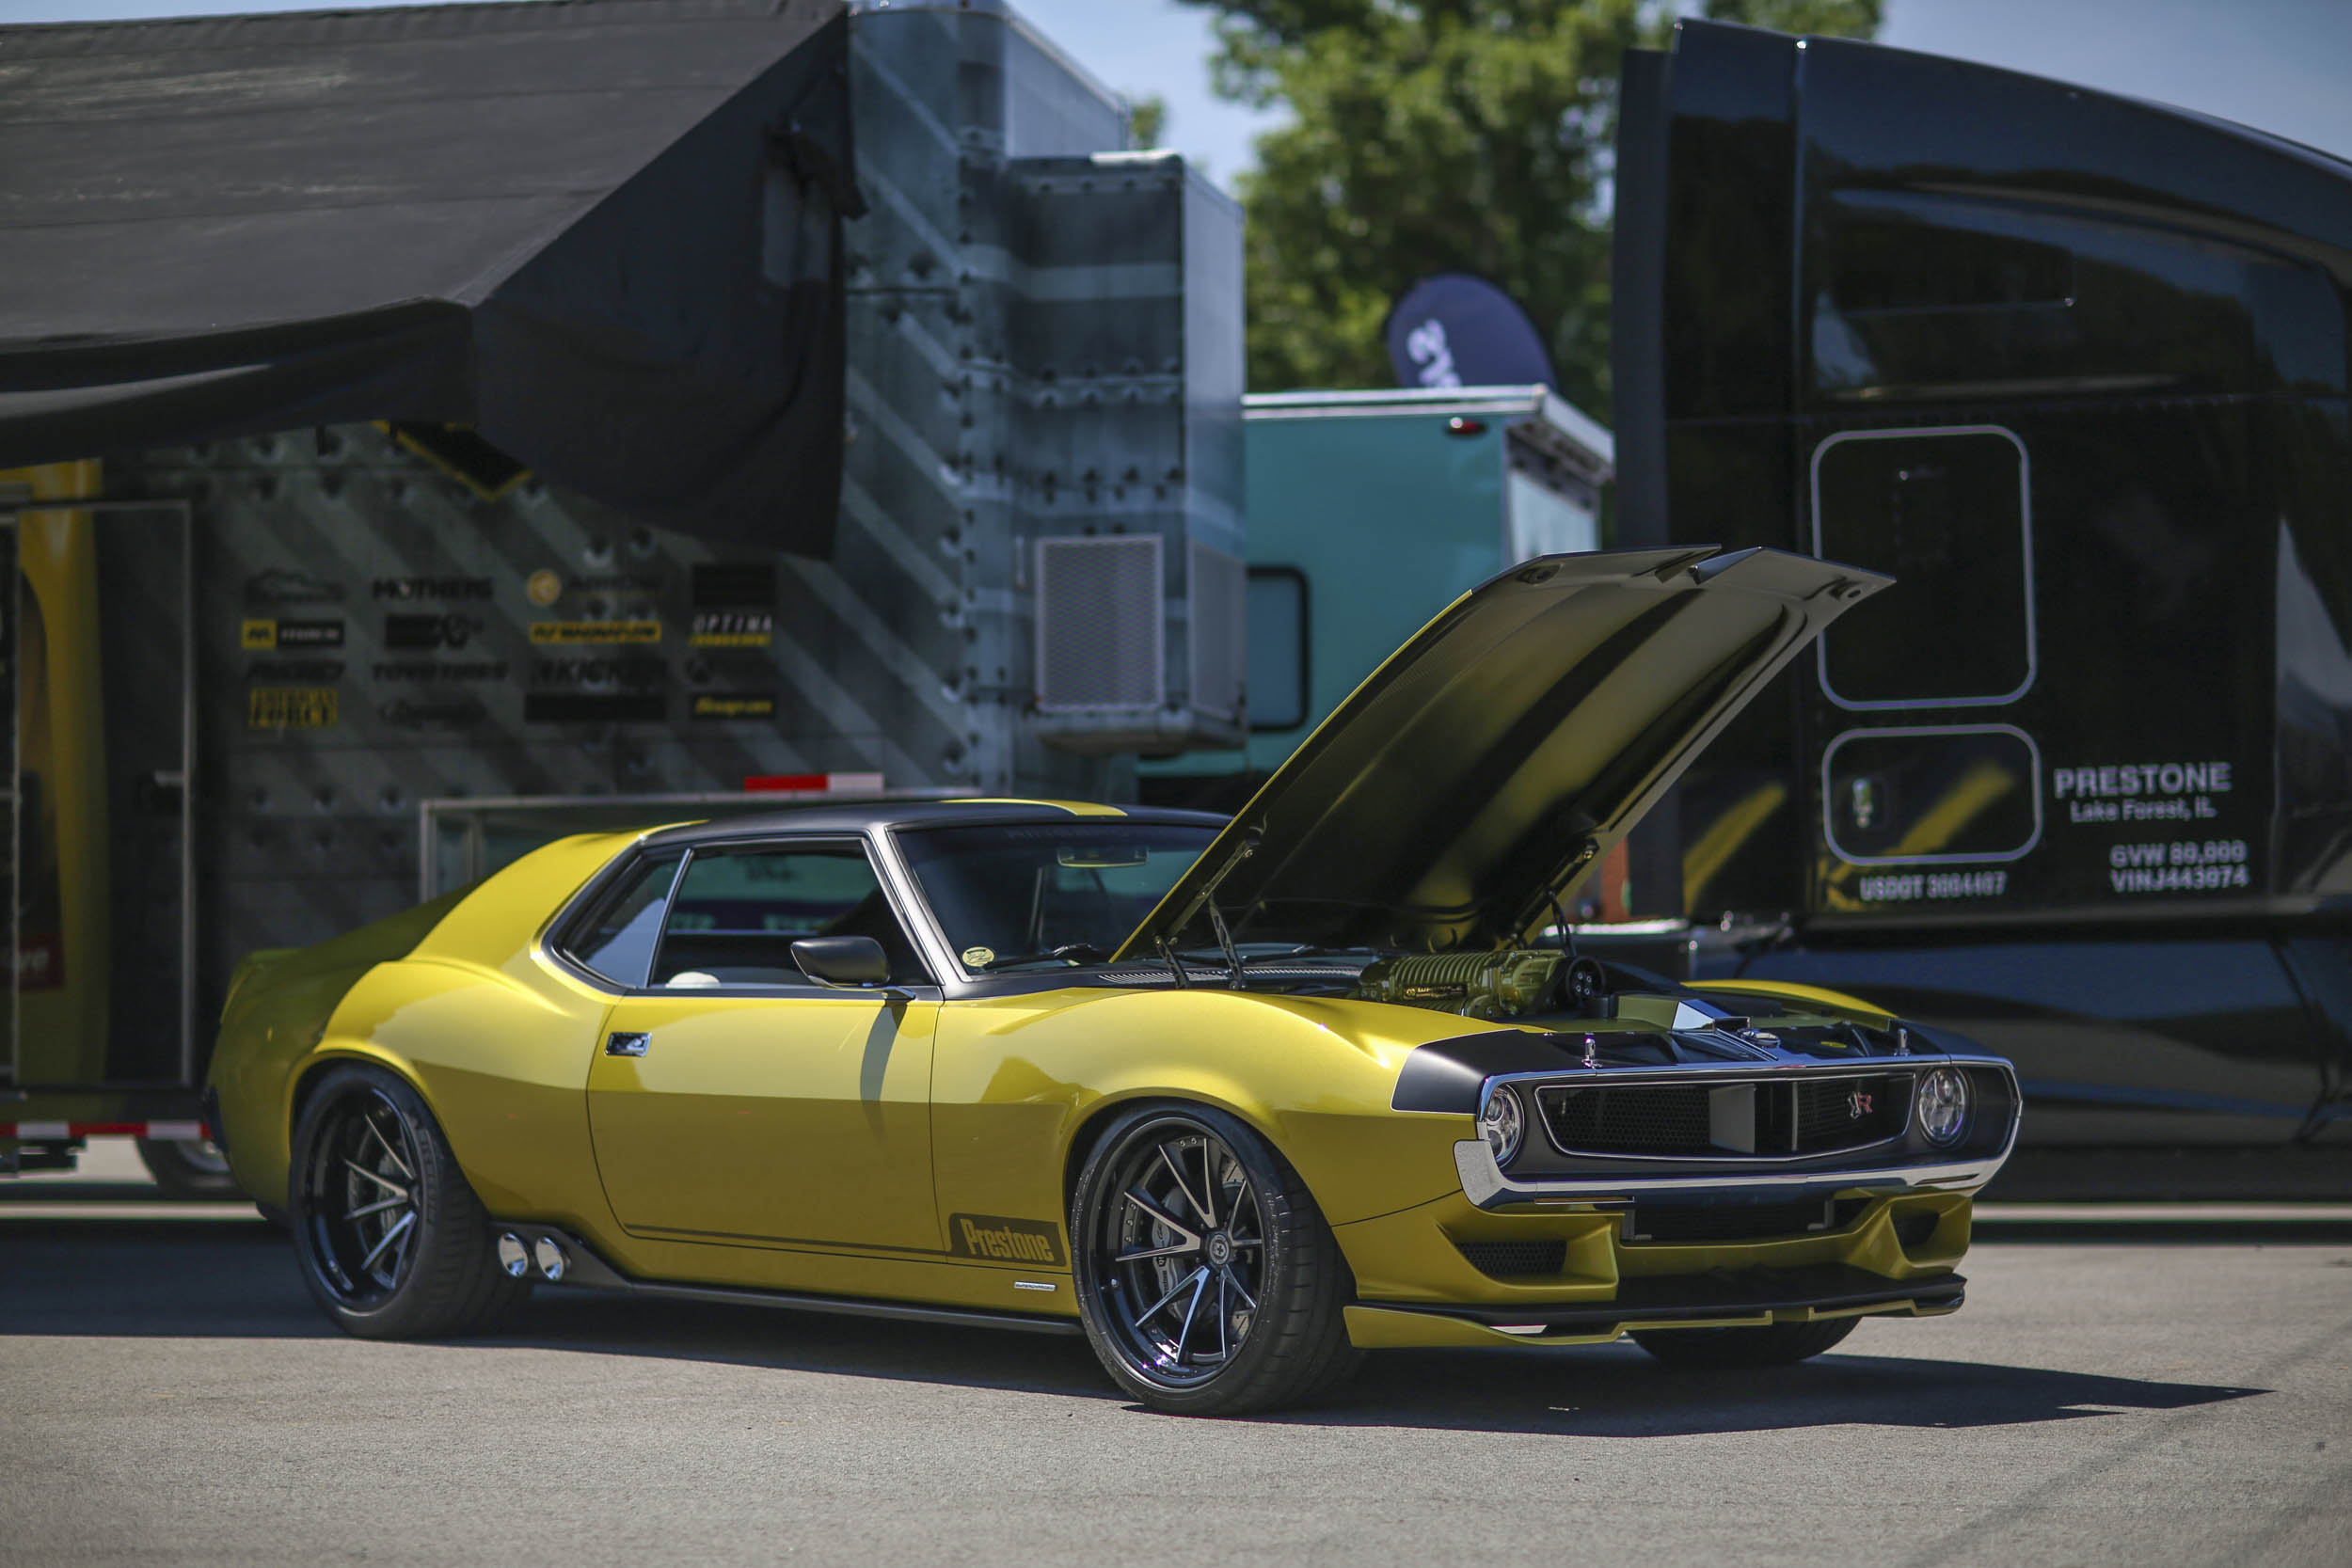 Prestone brought its AMC Javelin AMX